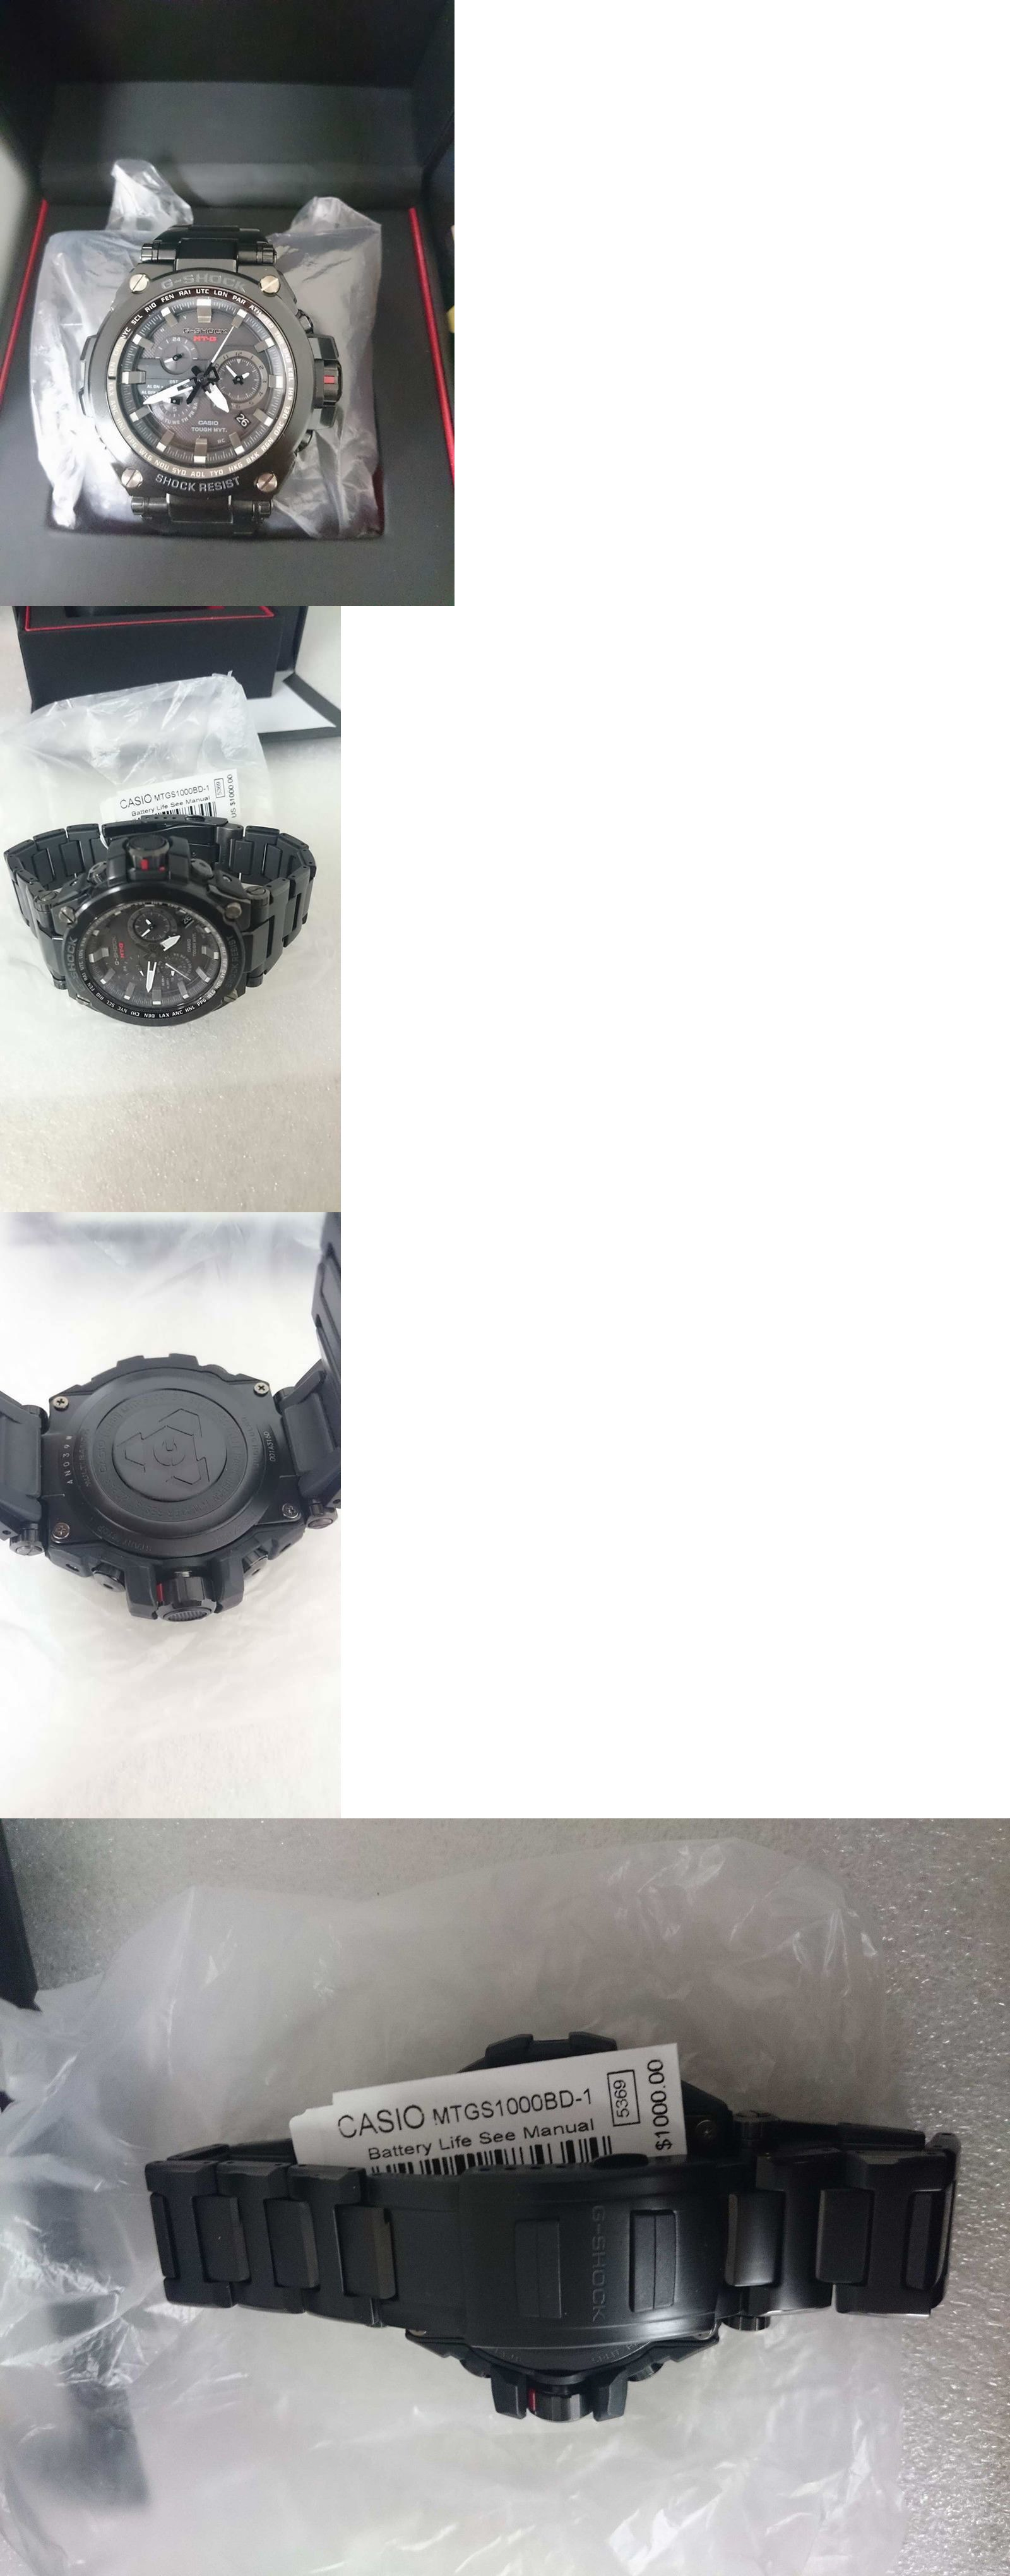 Other Watches 166739: Casio Gshock Men S Mtg Black Watch Mtgs1000bd-1A -> BUY IT NOW ONLY: $555 on eBay!